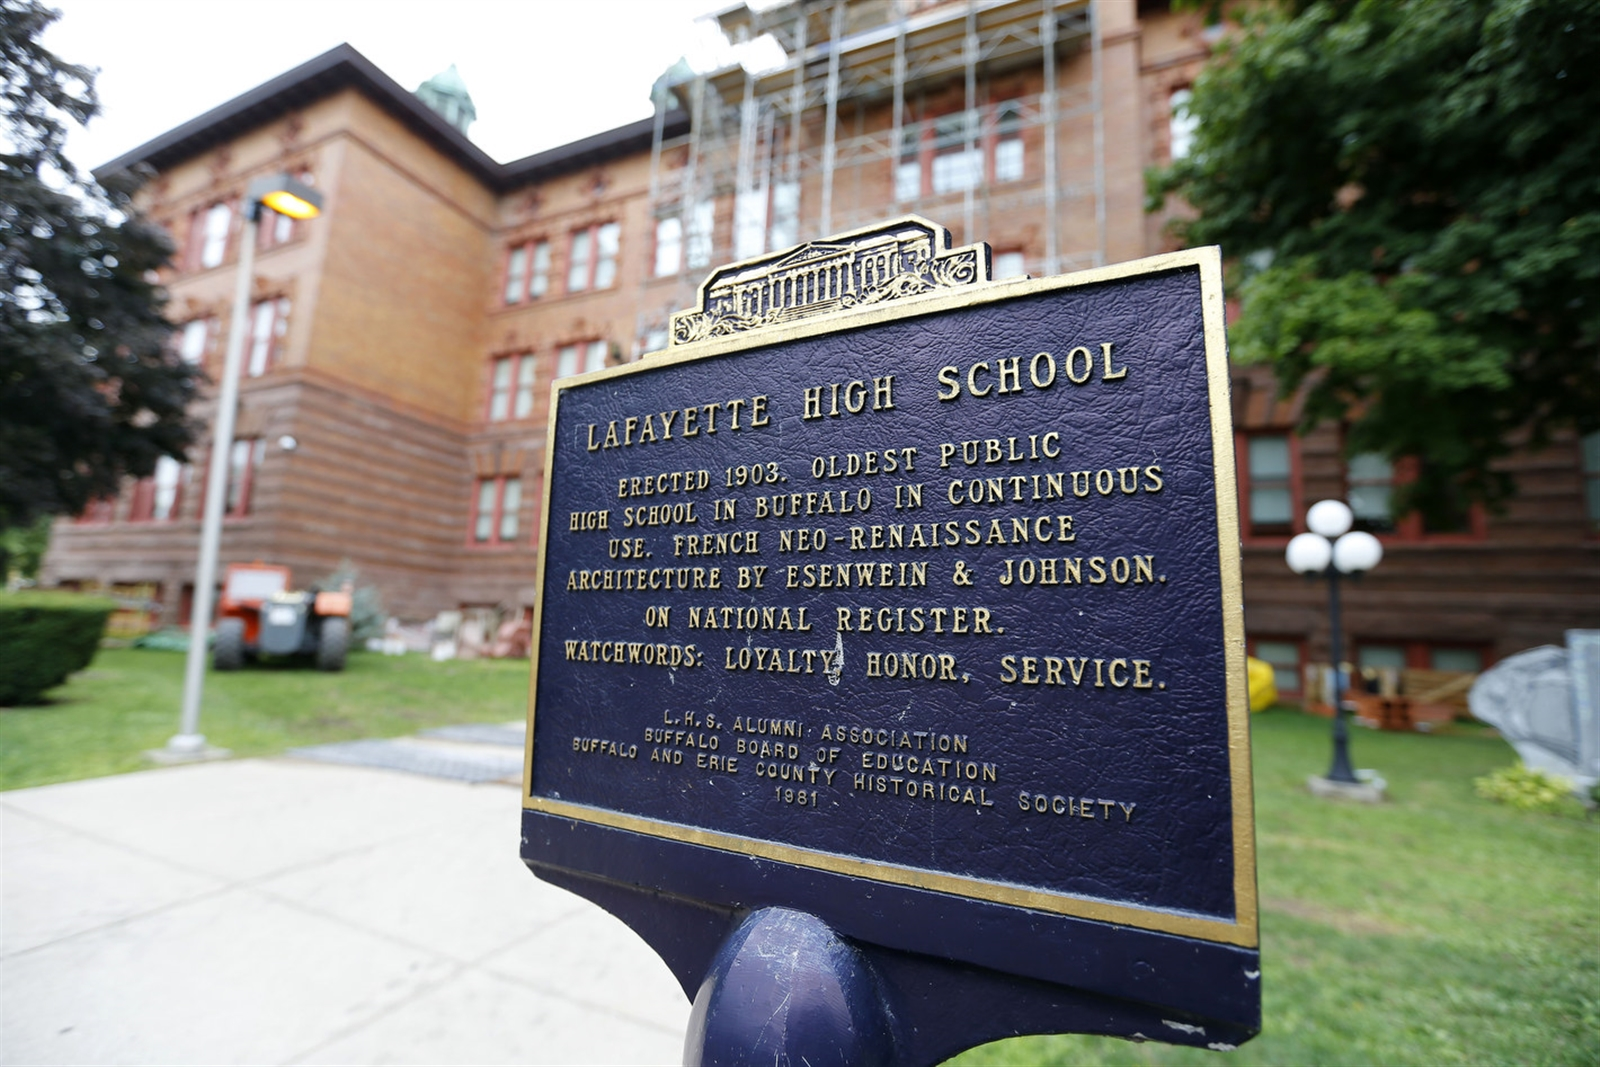 Lafayette High School was the third high school built in Buffalo, and the oldest that still remains in its original building. The school was constructed in 1901 by Mosier and Summers and designed by Buffalo architects Esenwein and Johnson.